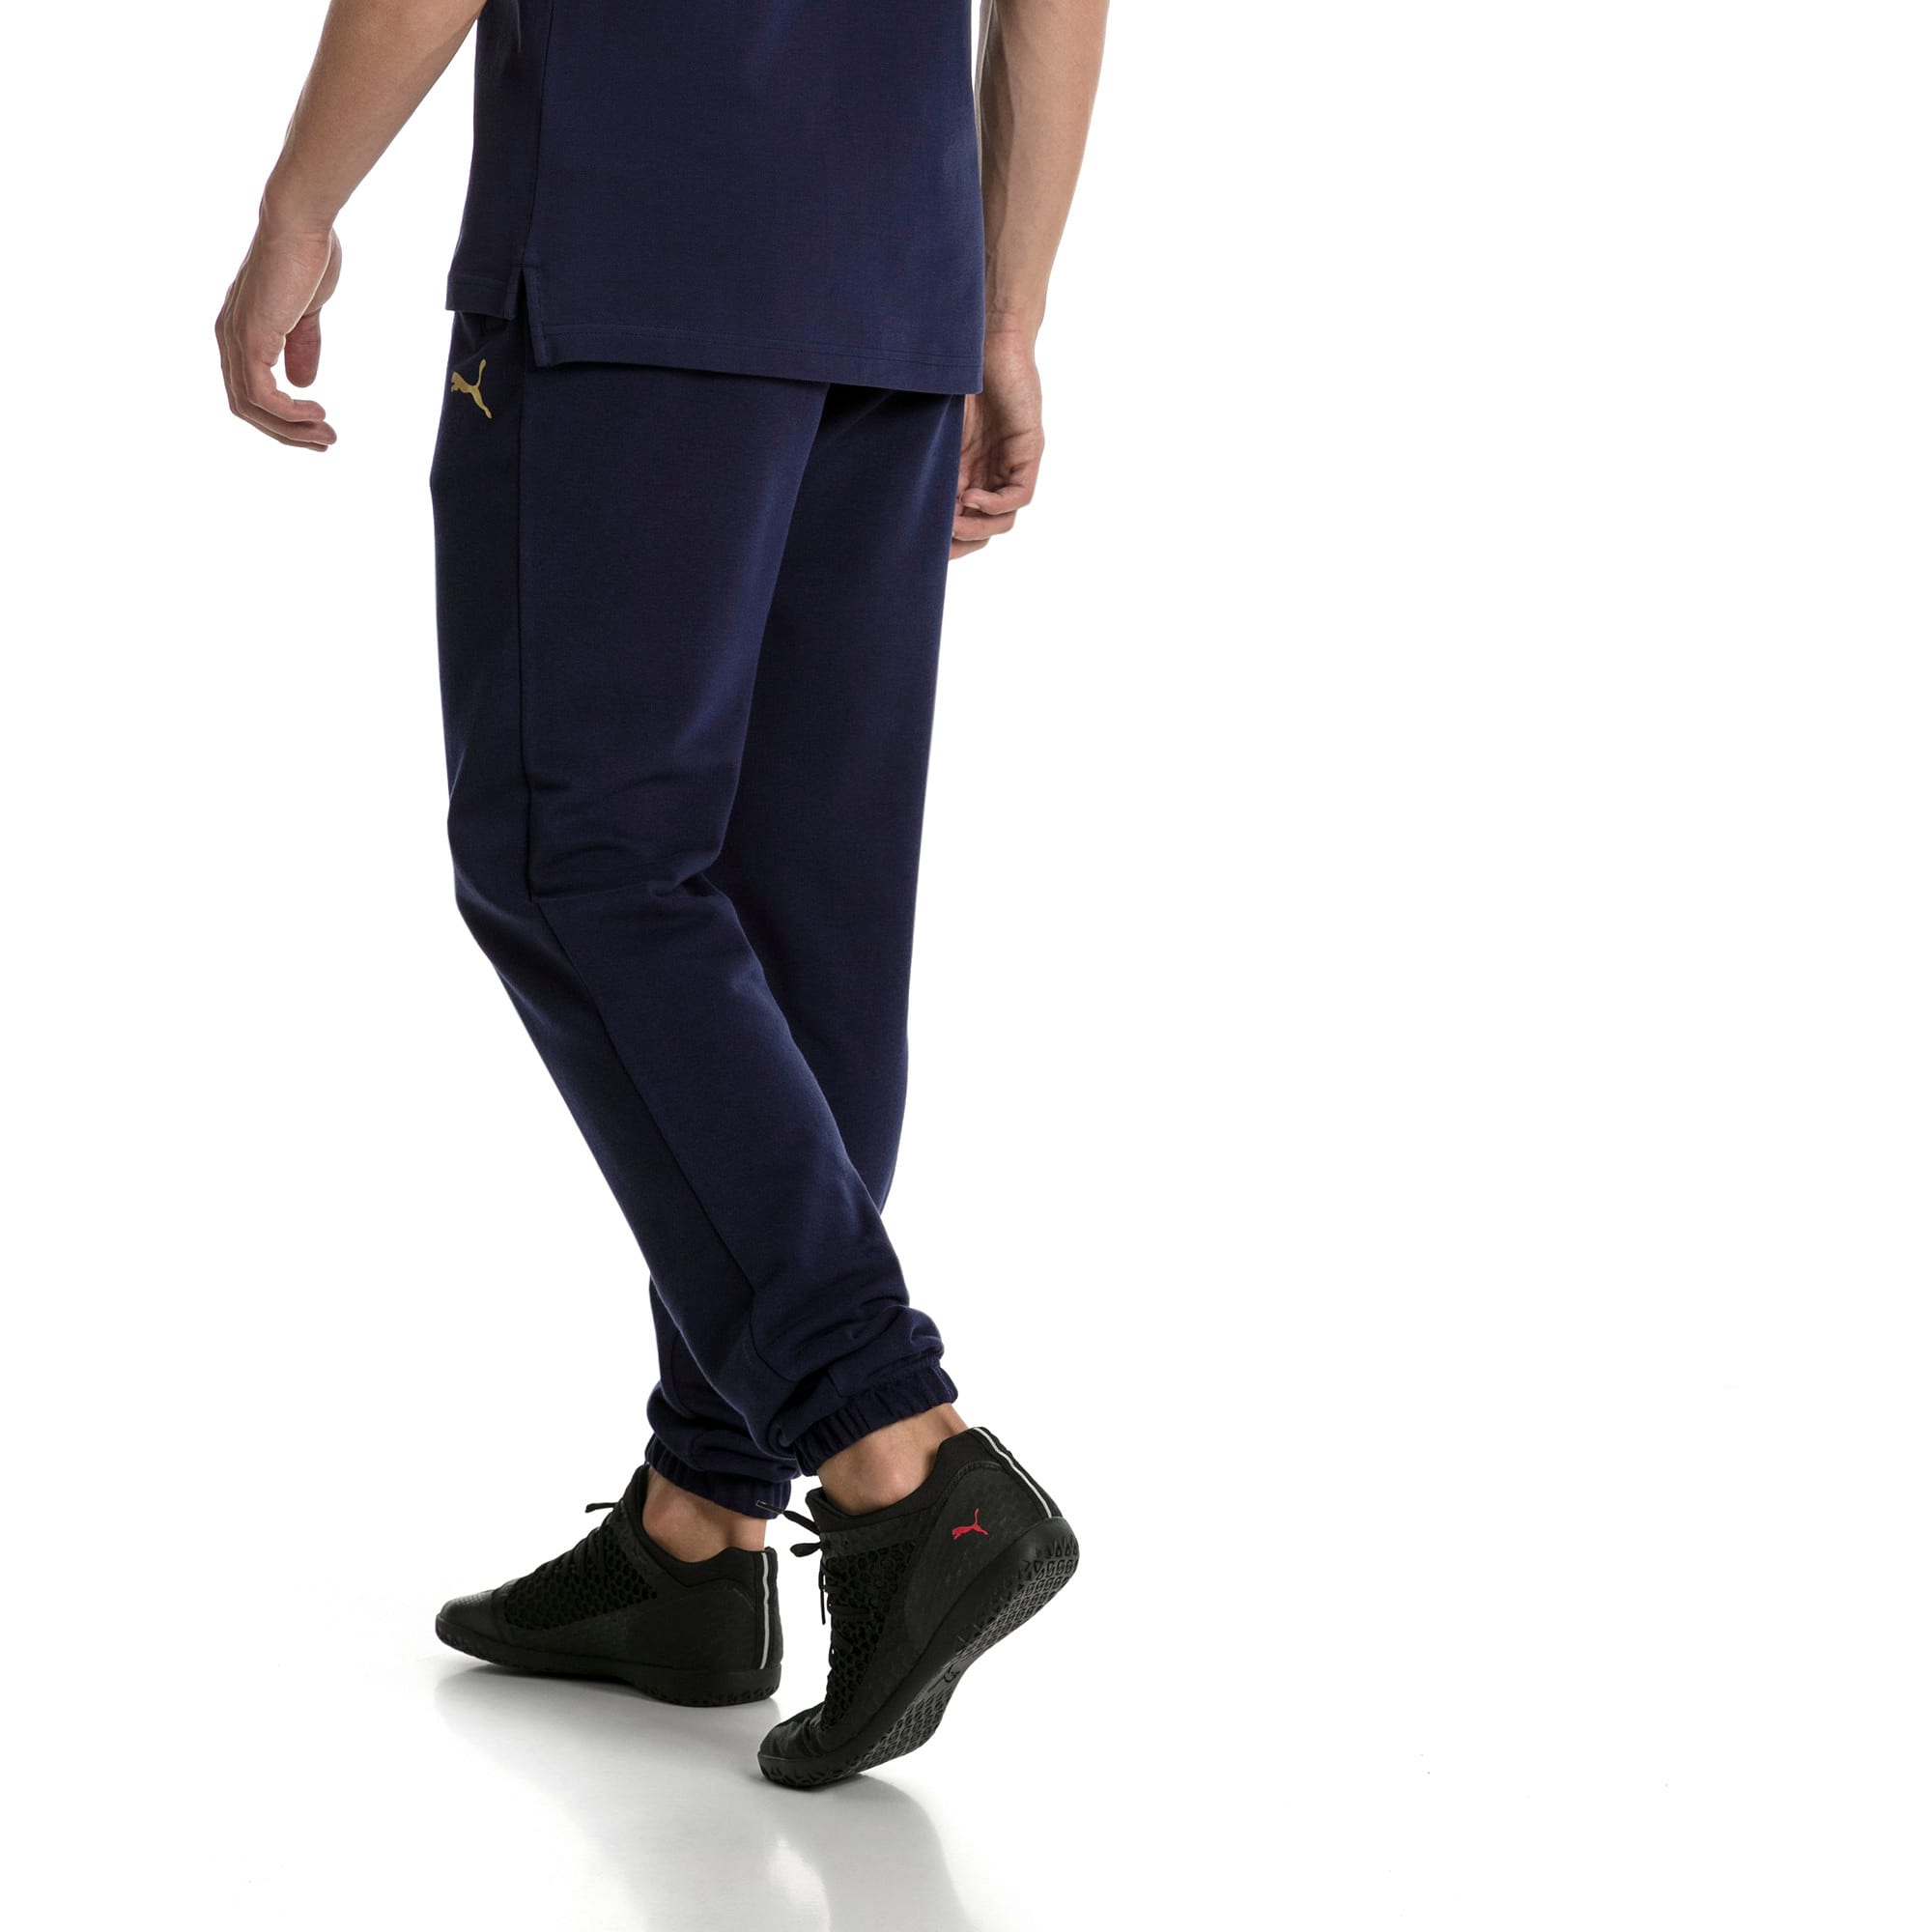 Thumbnail 3 of Italia Herren Jogginghose, Peacoat, medium